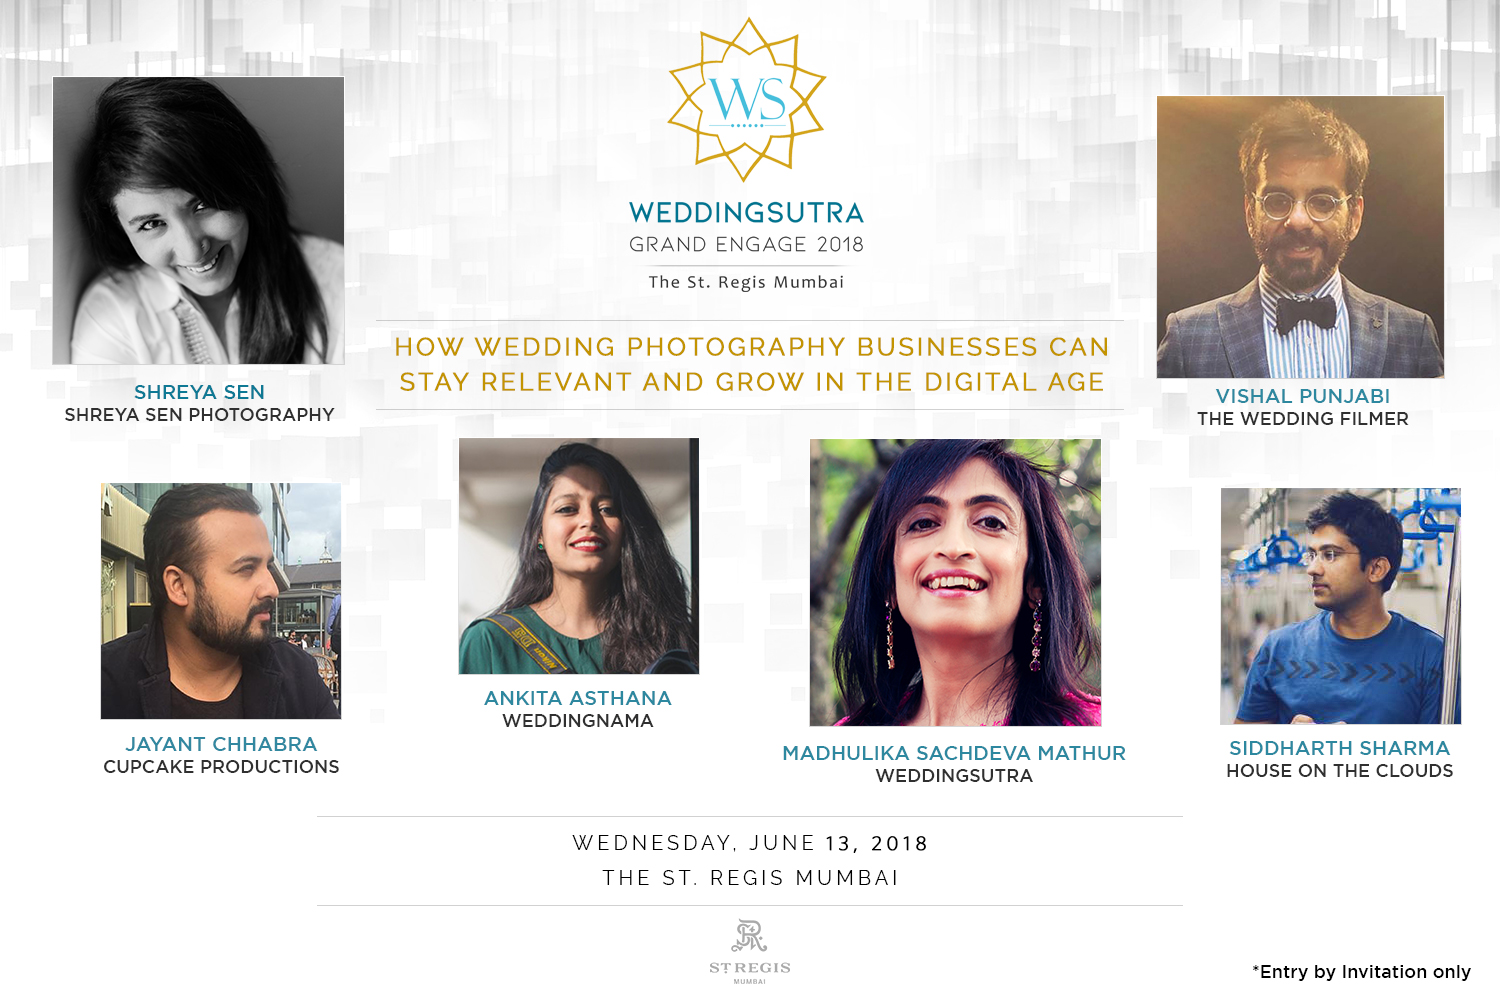 Panelists - Ankita Asthana (Co-founder, WeddingNama), Jayant Chhabra (Co-founder, Cupcake Productions), Shreya Sen (Founder, Shreya Sen Photography), Siddharth Sharma (Founder, House On The Clouds), Vishal Punjabi (Founder, The Wedding Filmer)